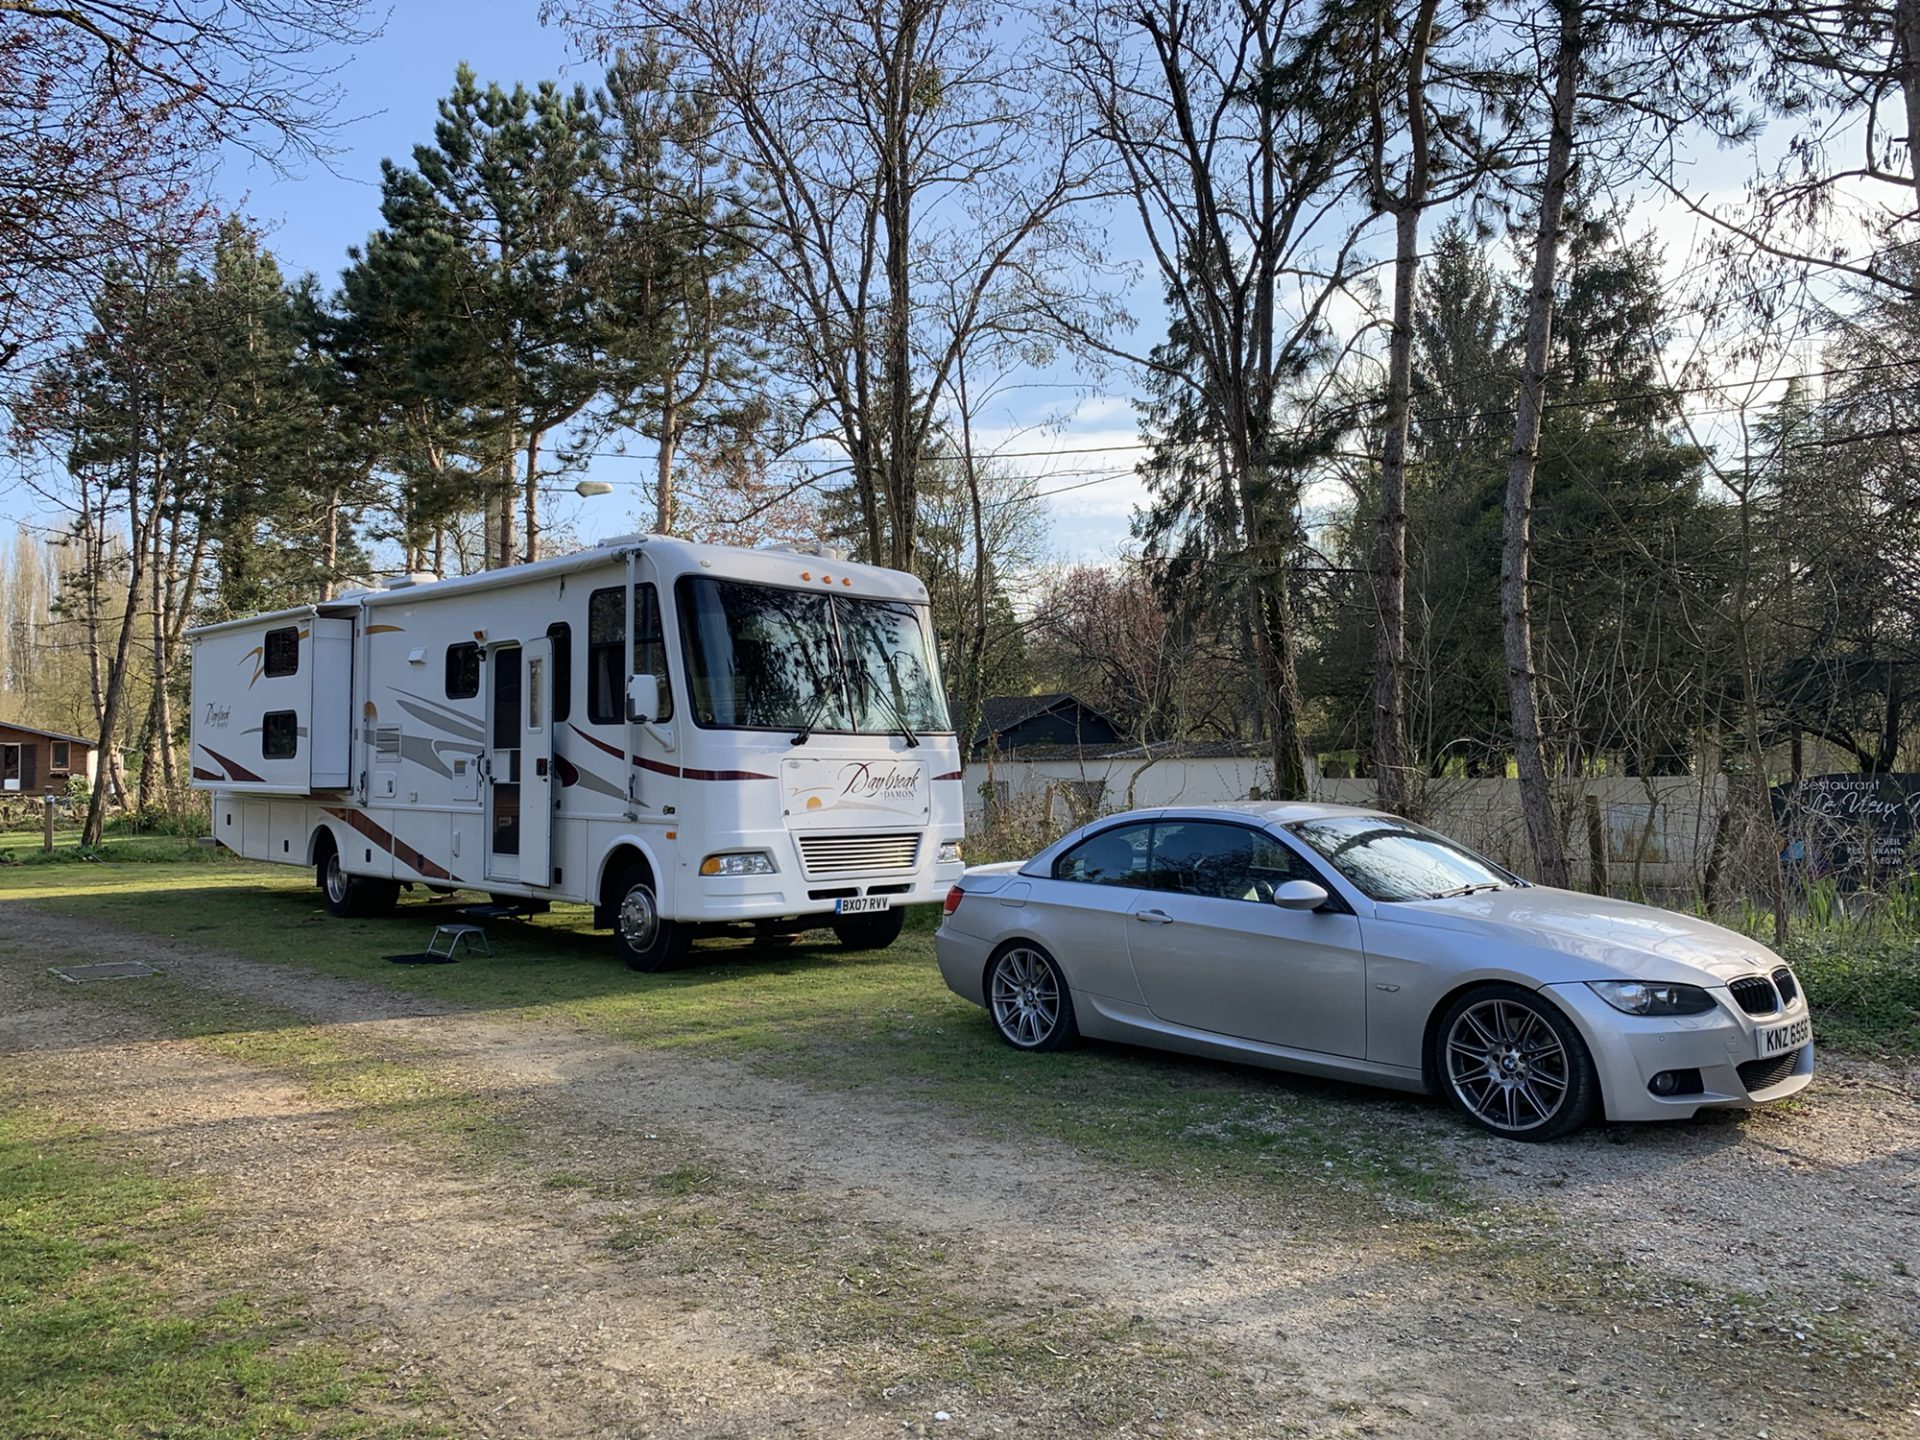 Review of Camping Neuville – Camping Le Vieux Moulin, Le Mans